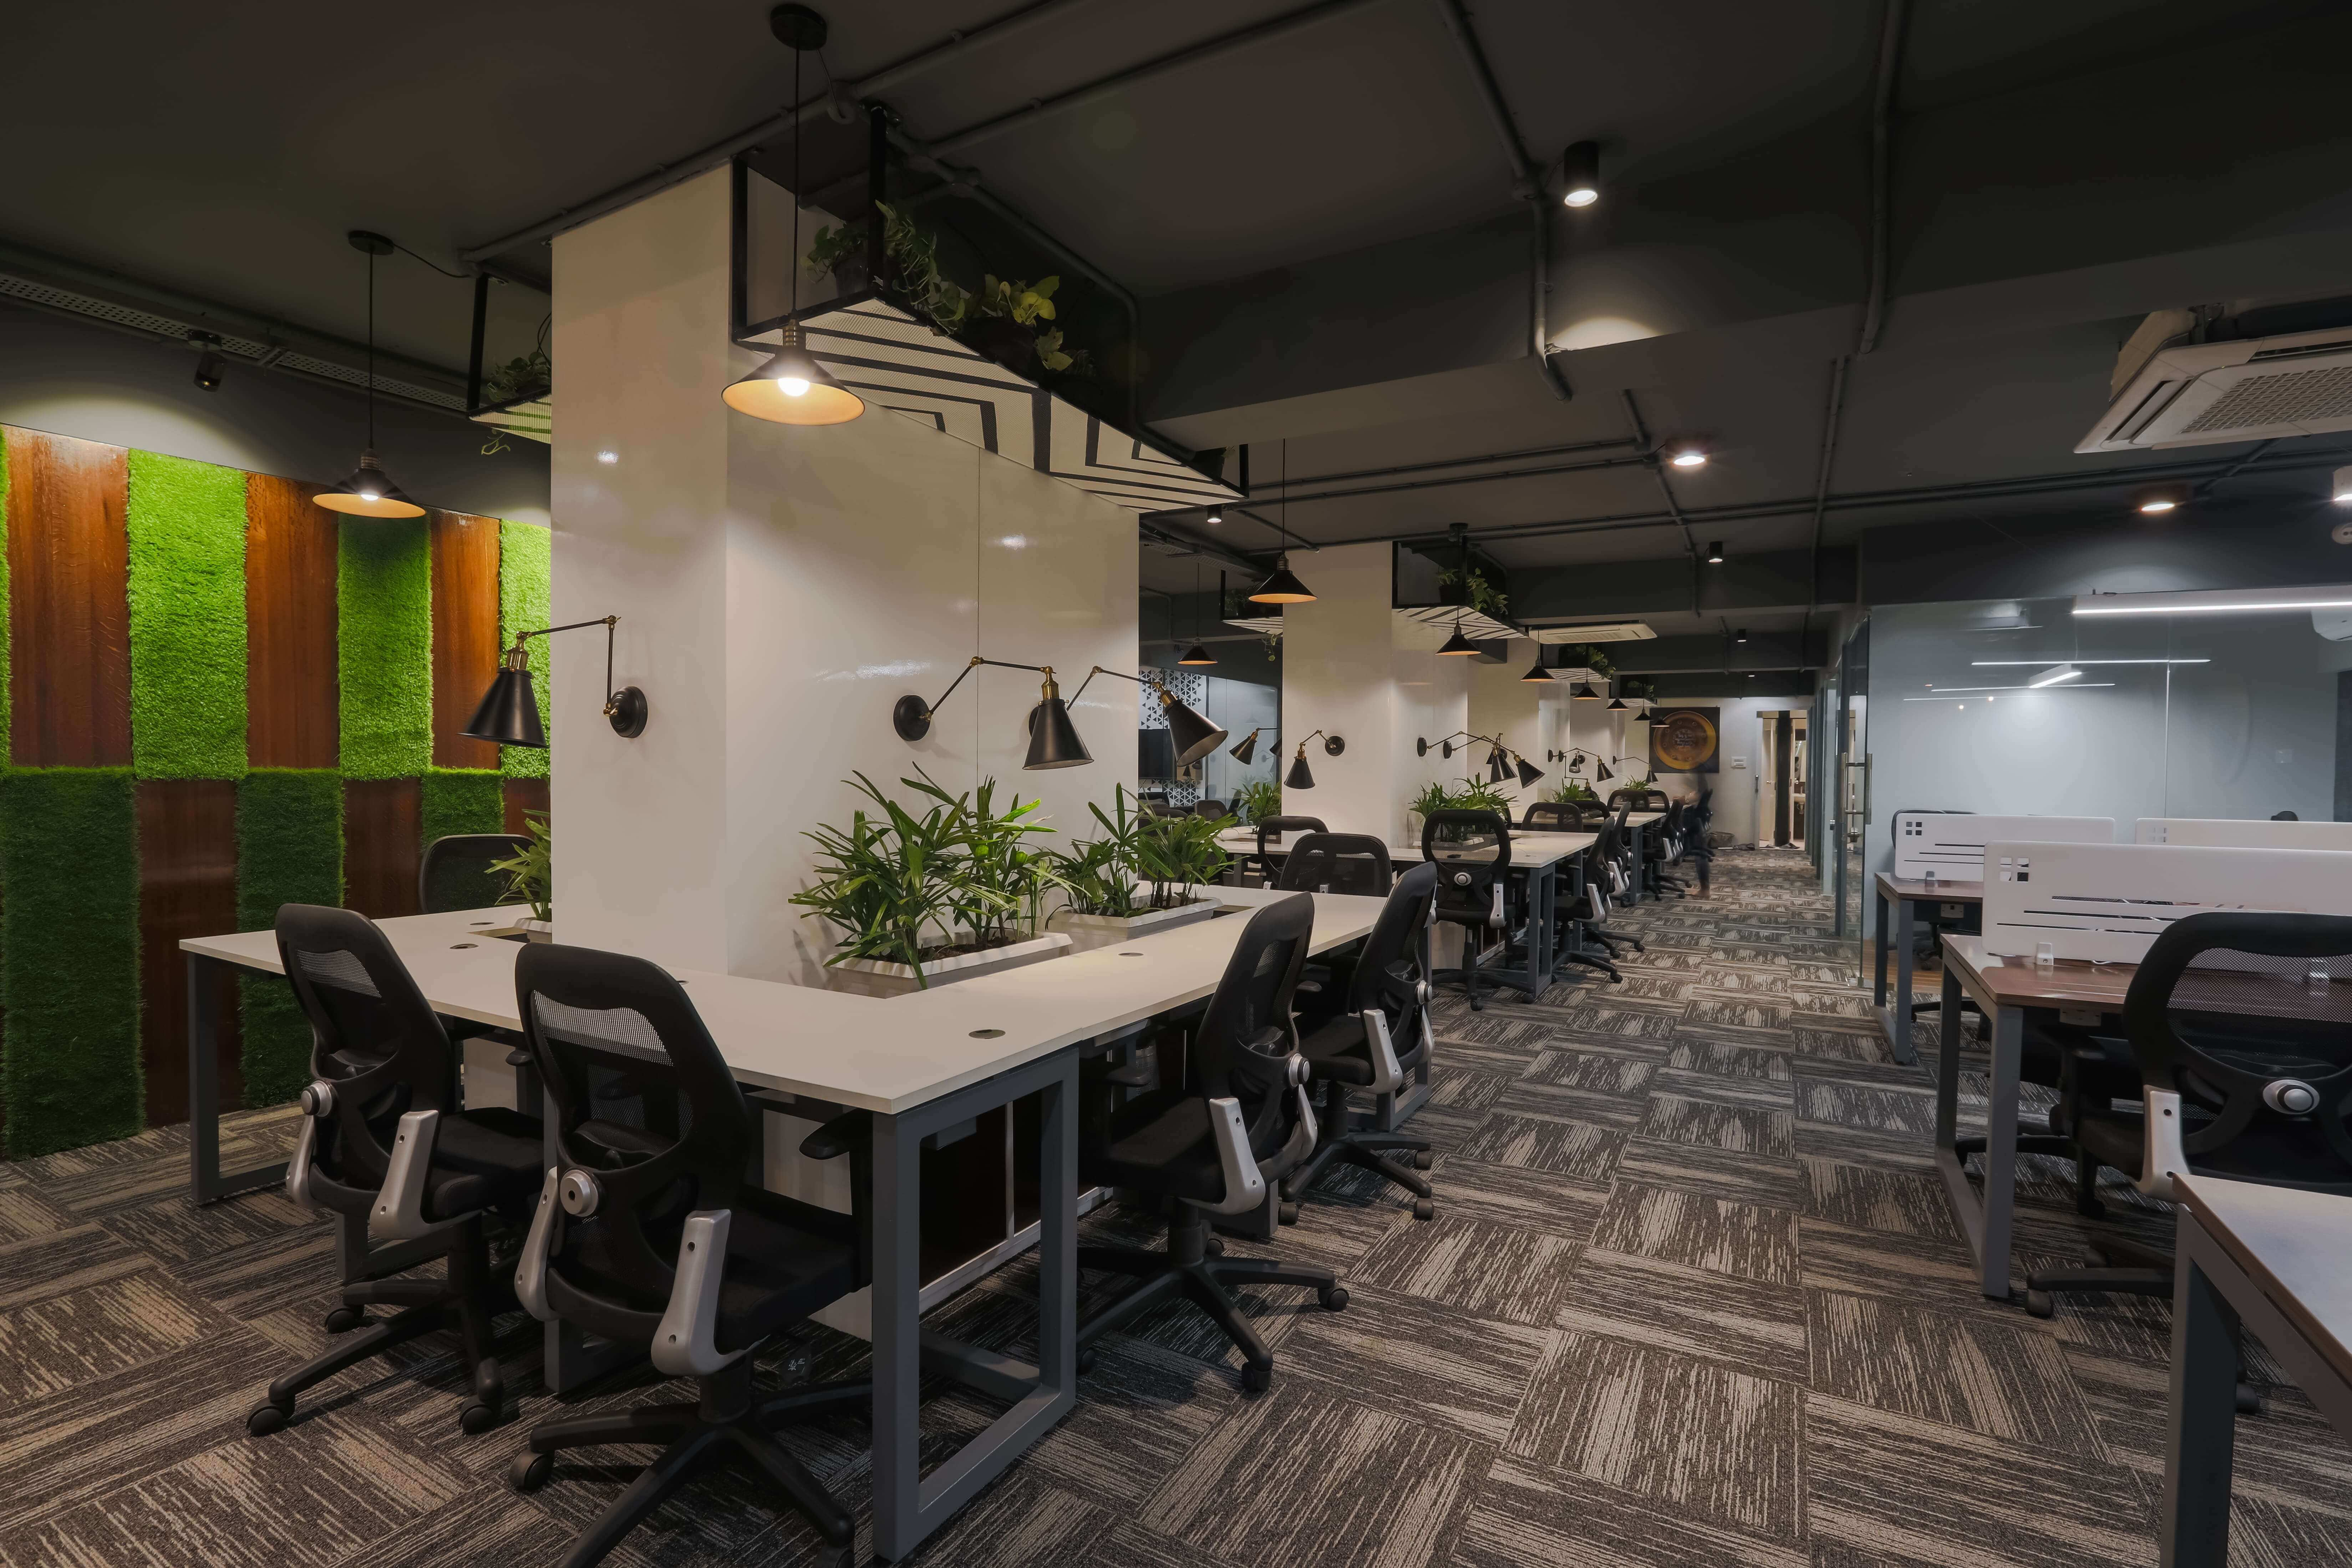 Sky Space Coworking Space in Indore